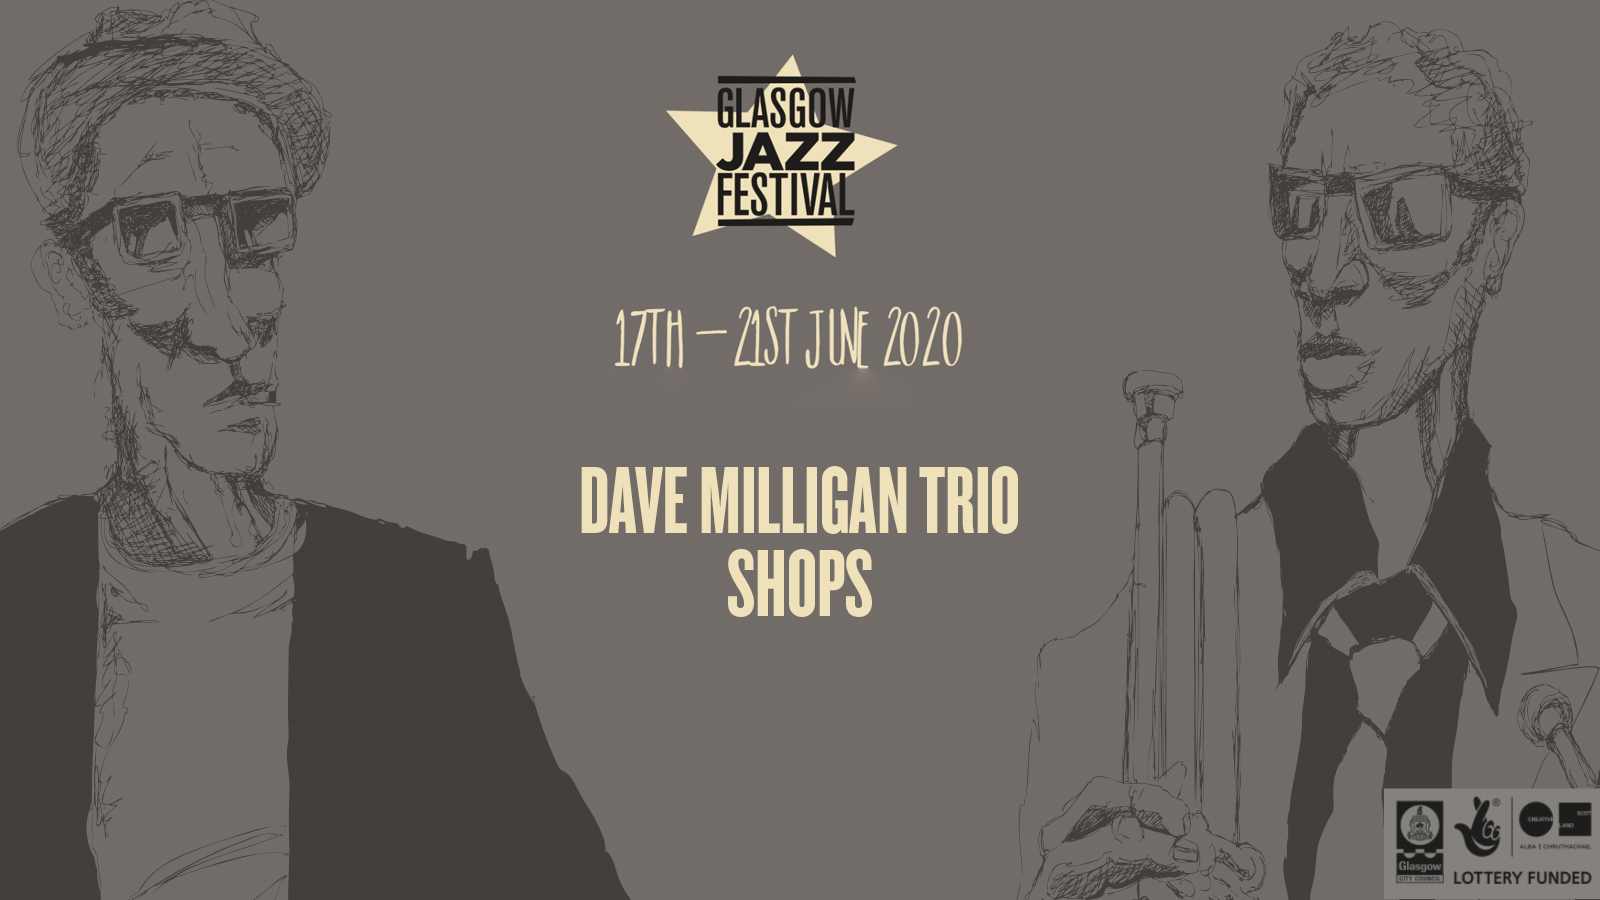 Dave Milligan Trio - Shops